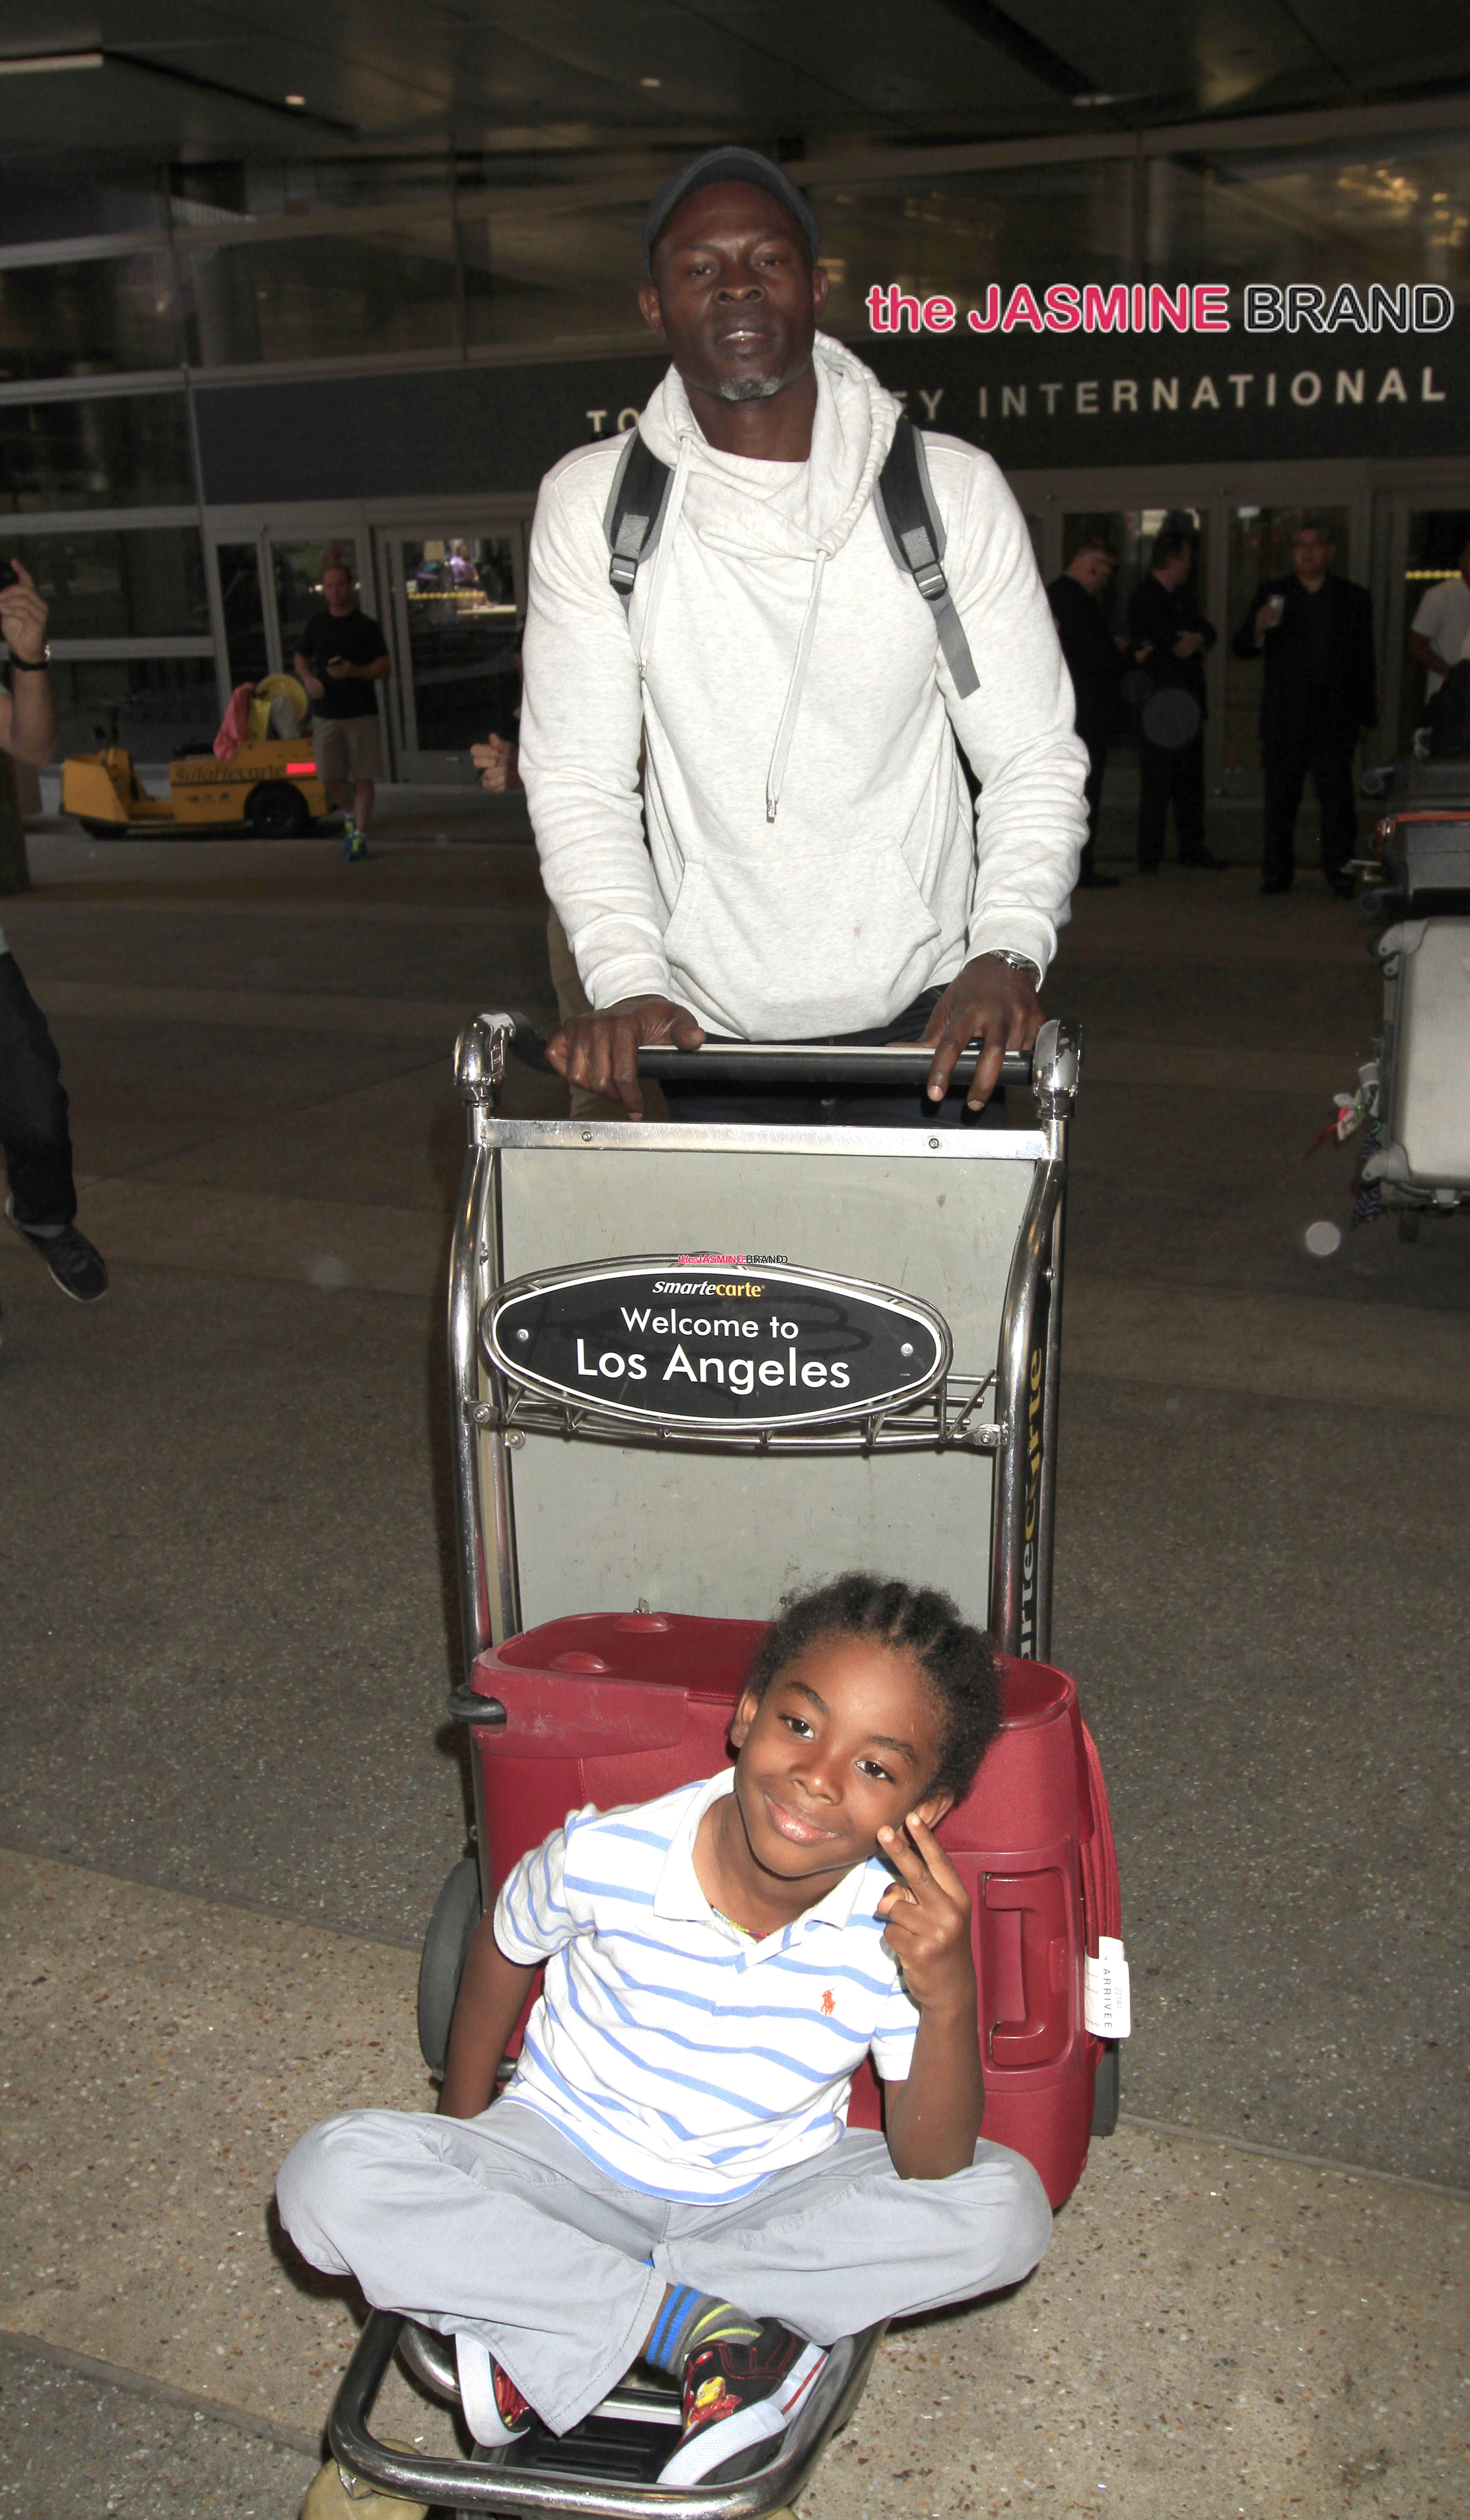 Djimon Hounsou pushes his son on a cart at LAX in Los Angeles